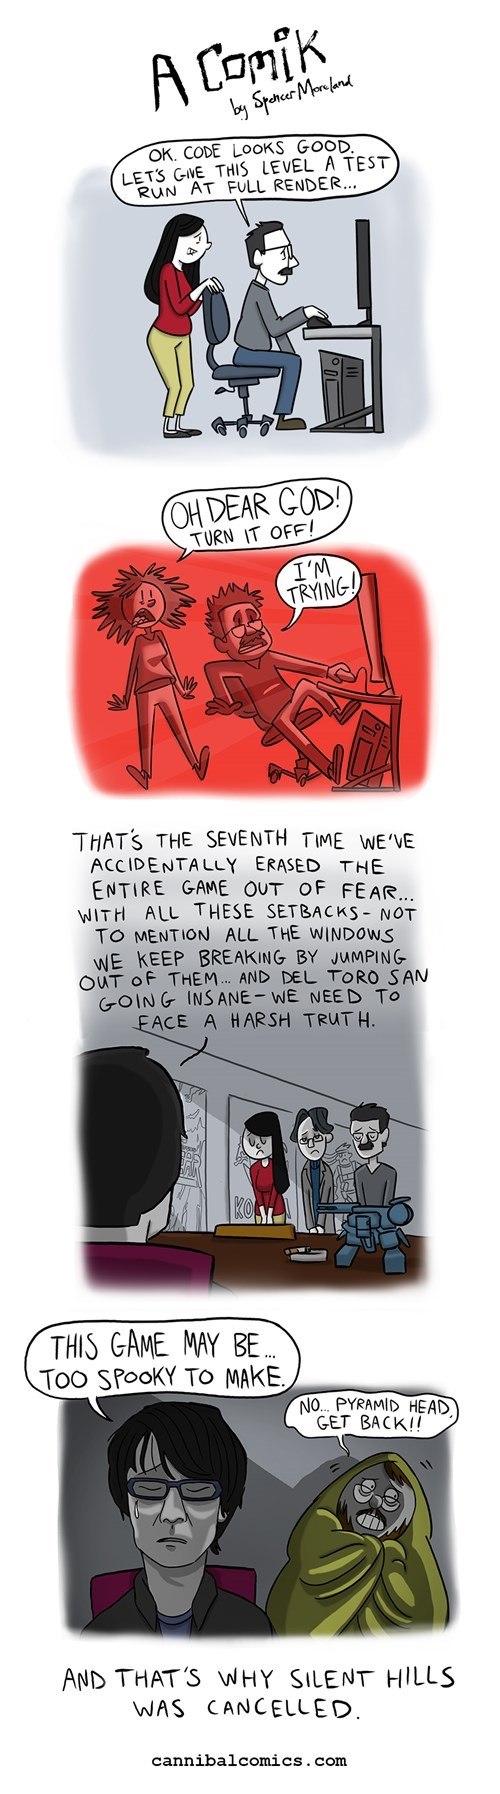 funny-web-comics-the-comic-that-explains-why-silent-hills-was-cancelled